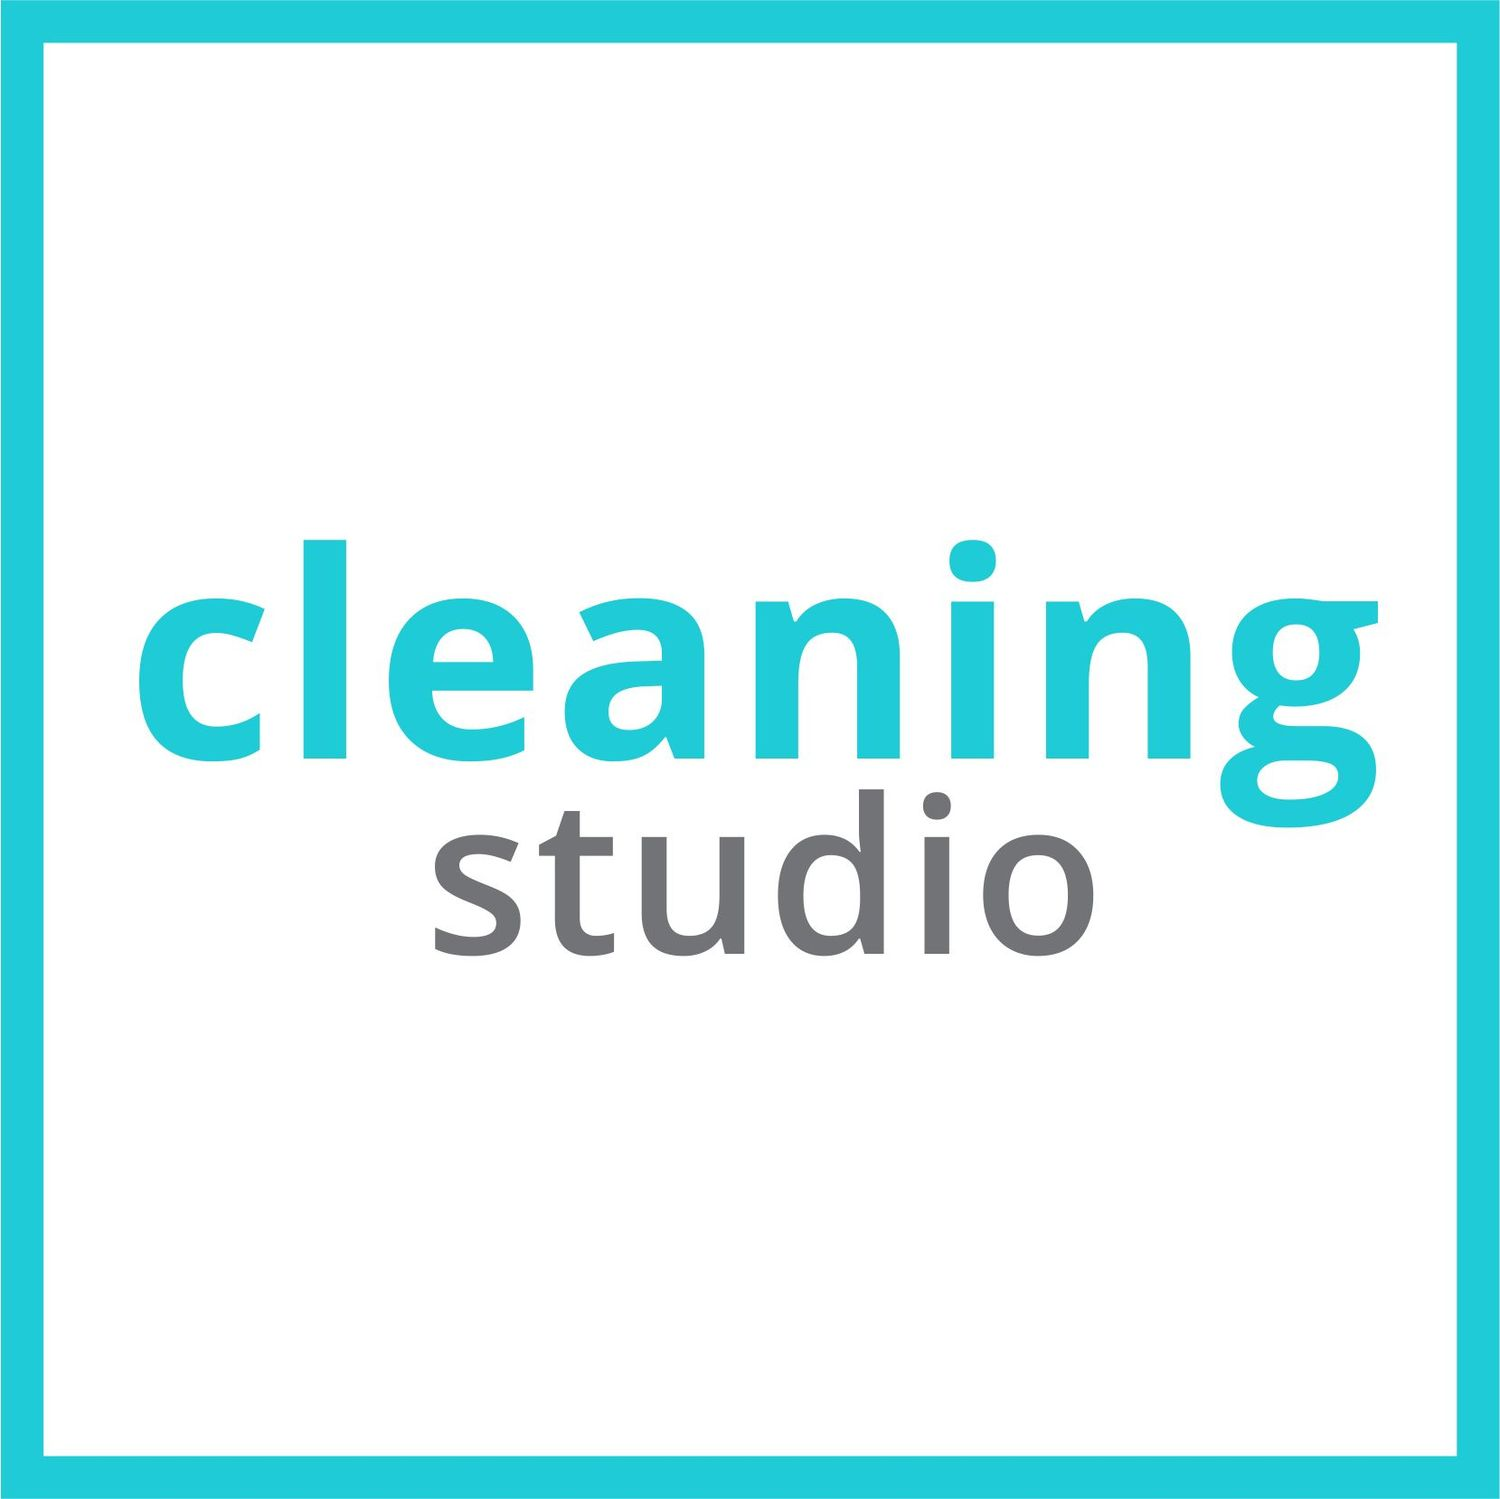 Home & Office Cleaning Service - NYC, Fairfield CT | Cleaning Studio